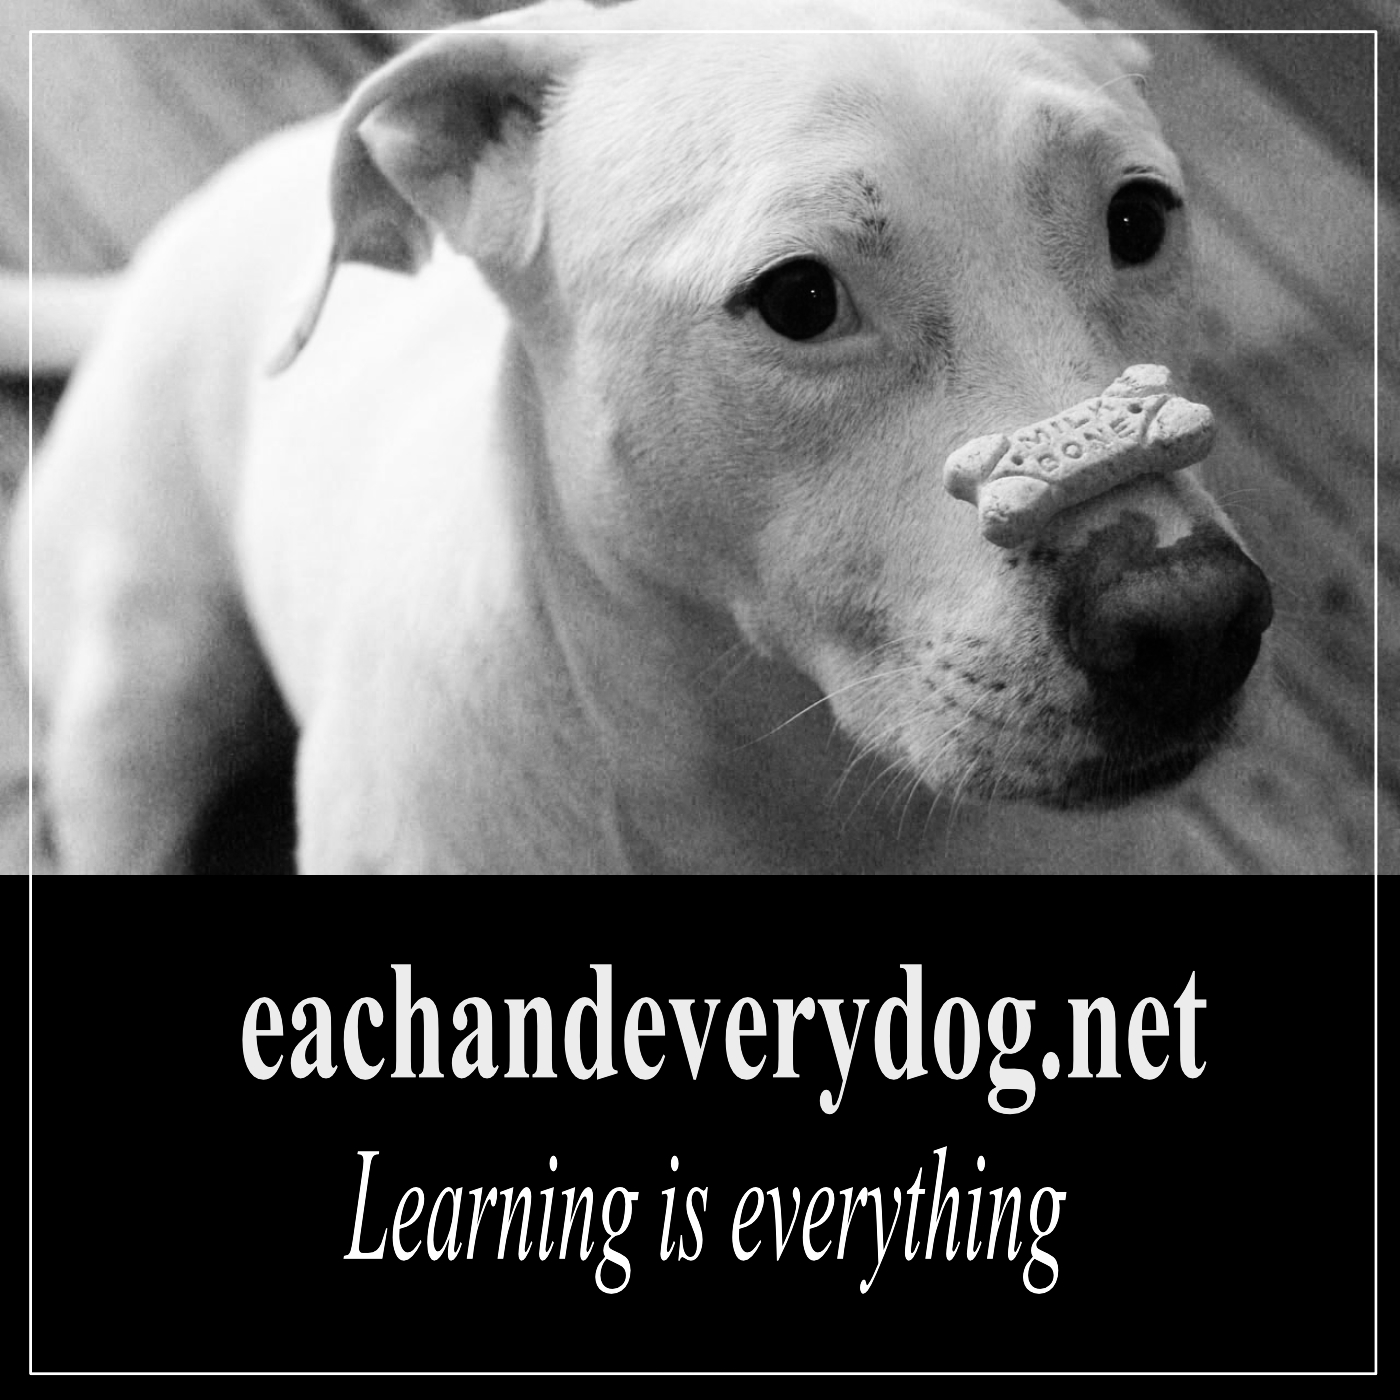 Each and every dog